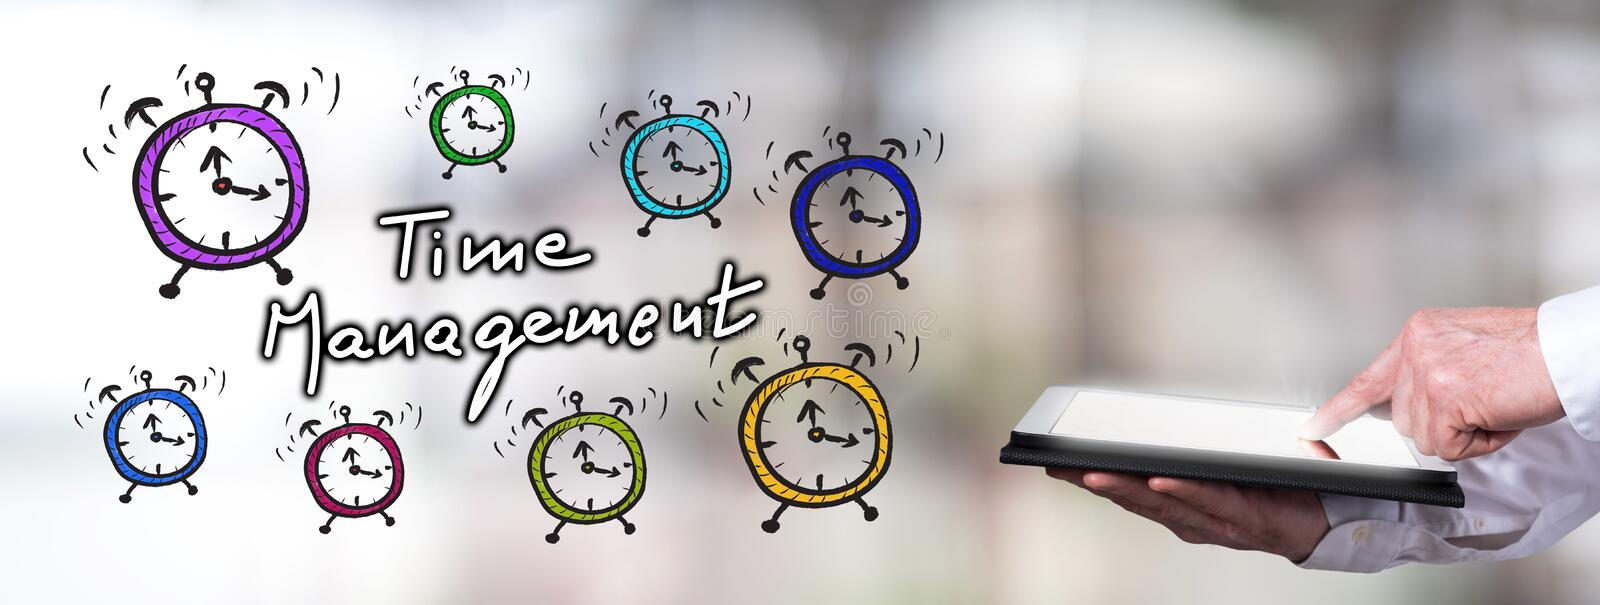 Time management concept with man using a tablet. Man using a tablet with time management concept royalty free stock image